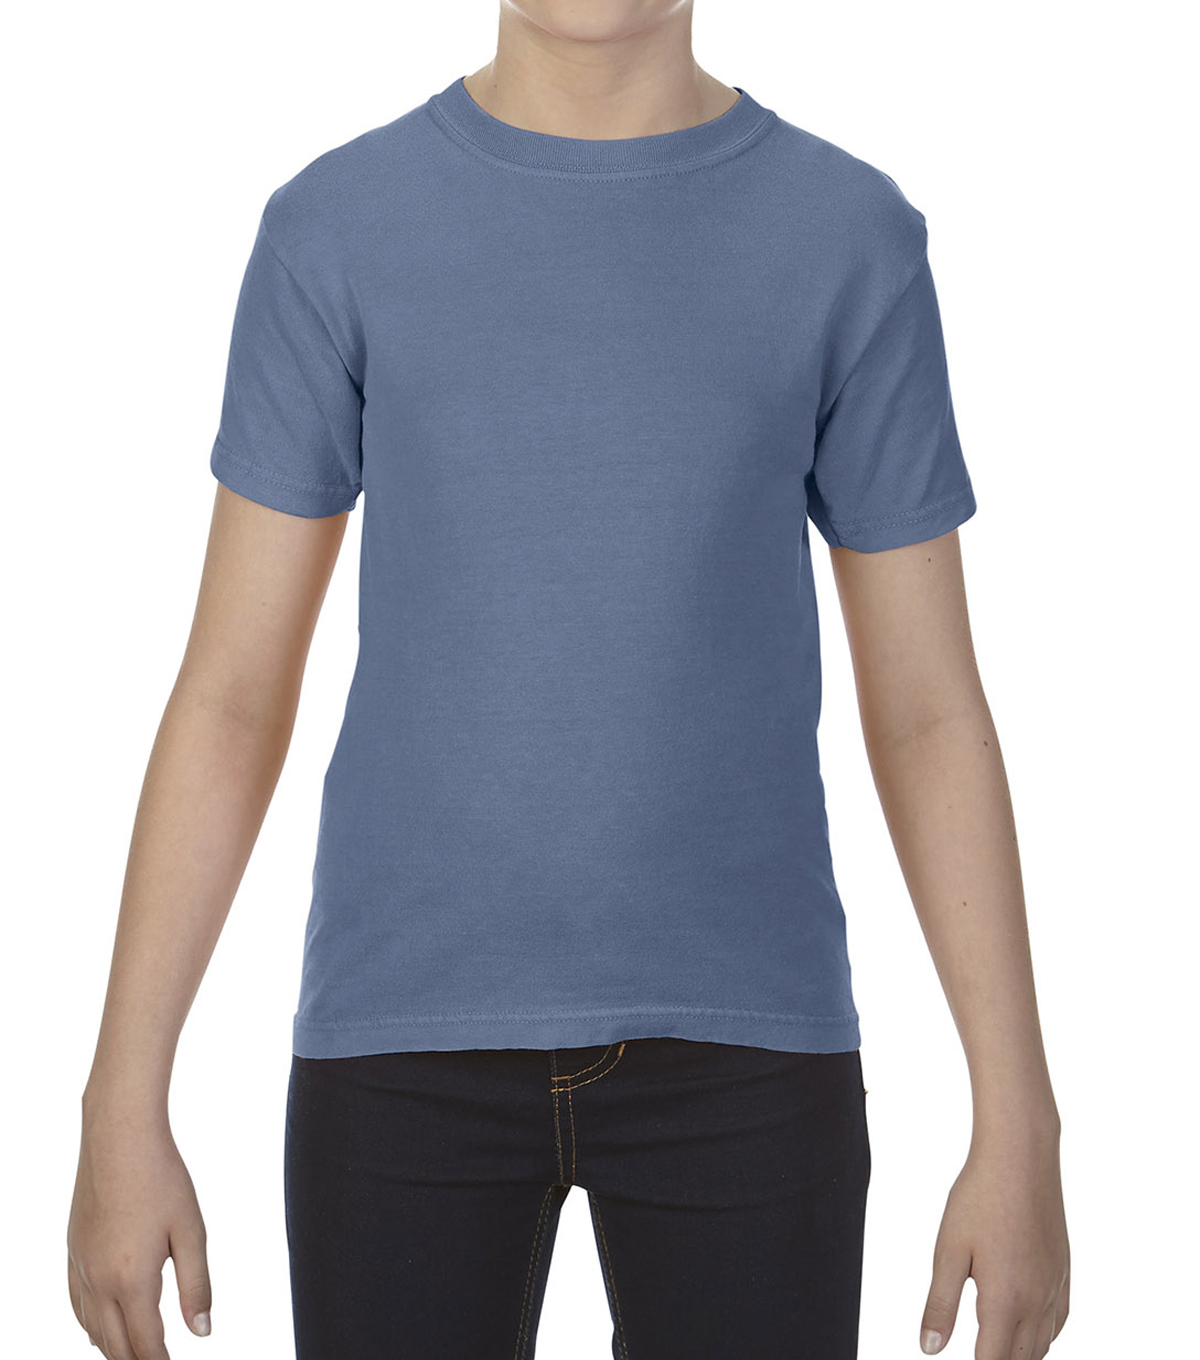 Comfort Colors 9018 Small Youth T-Shirt, Blue Jean